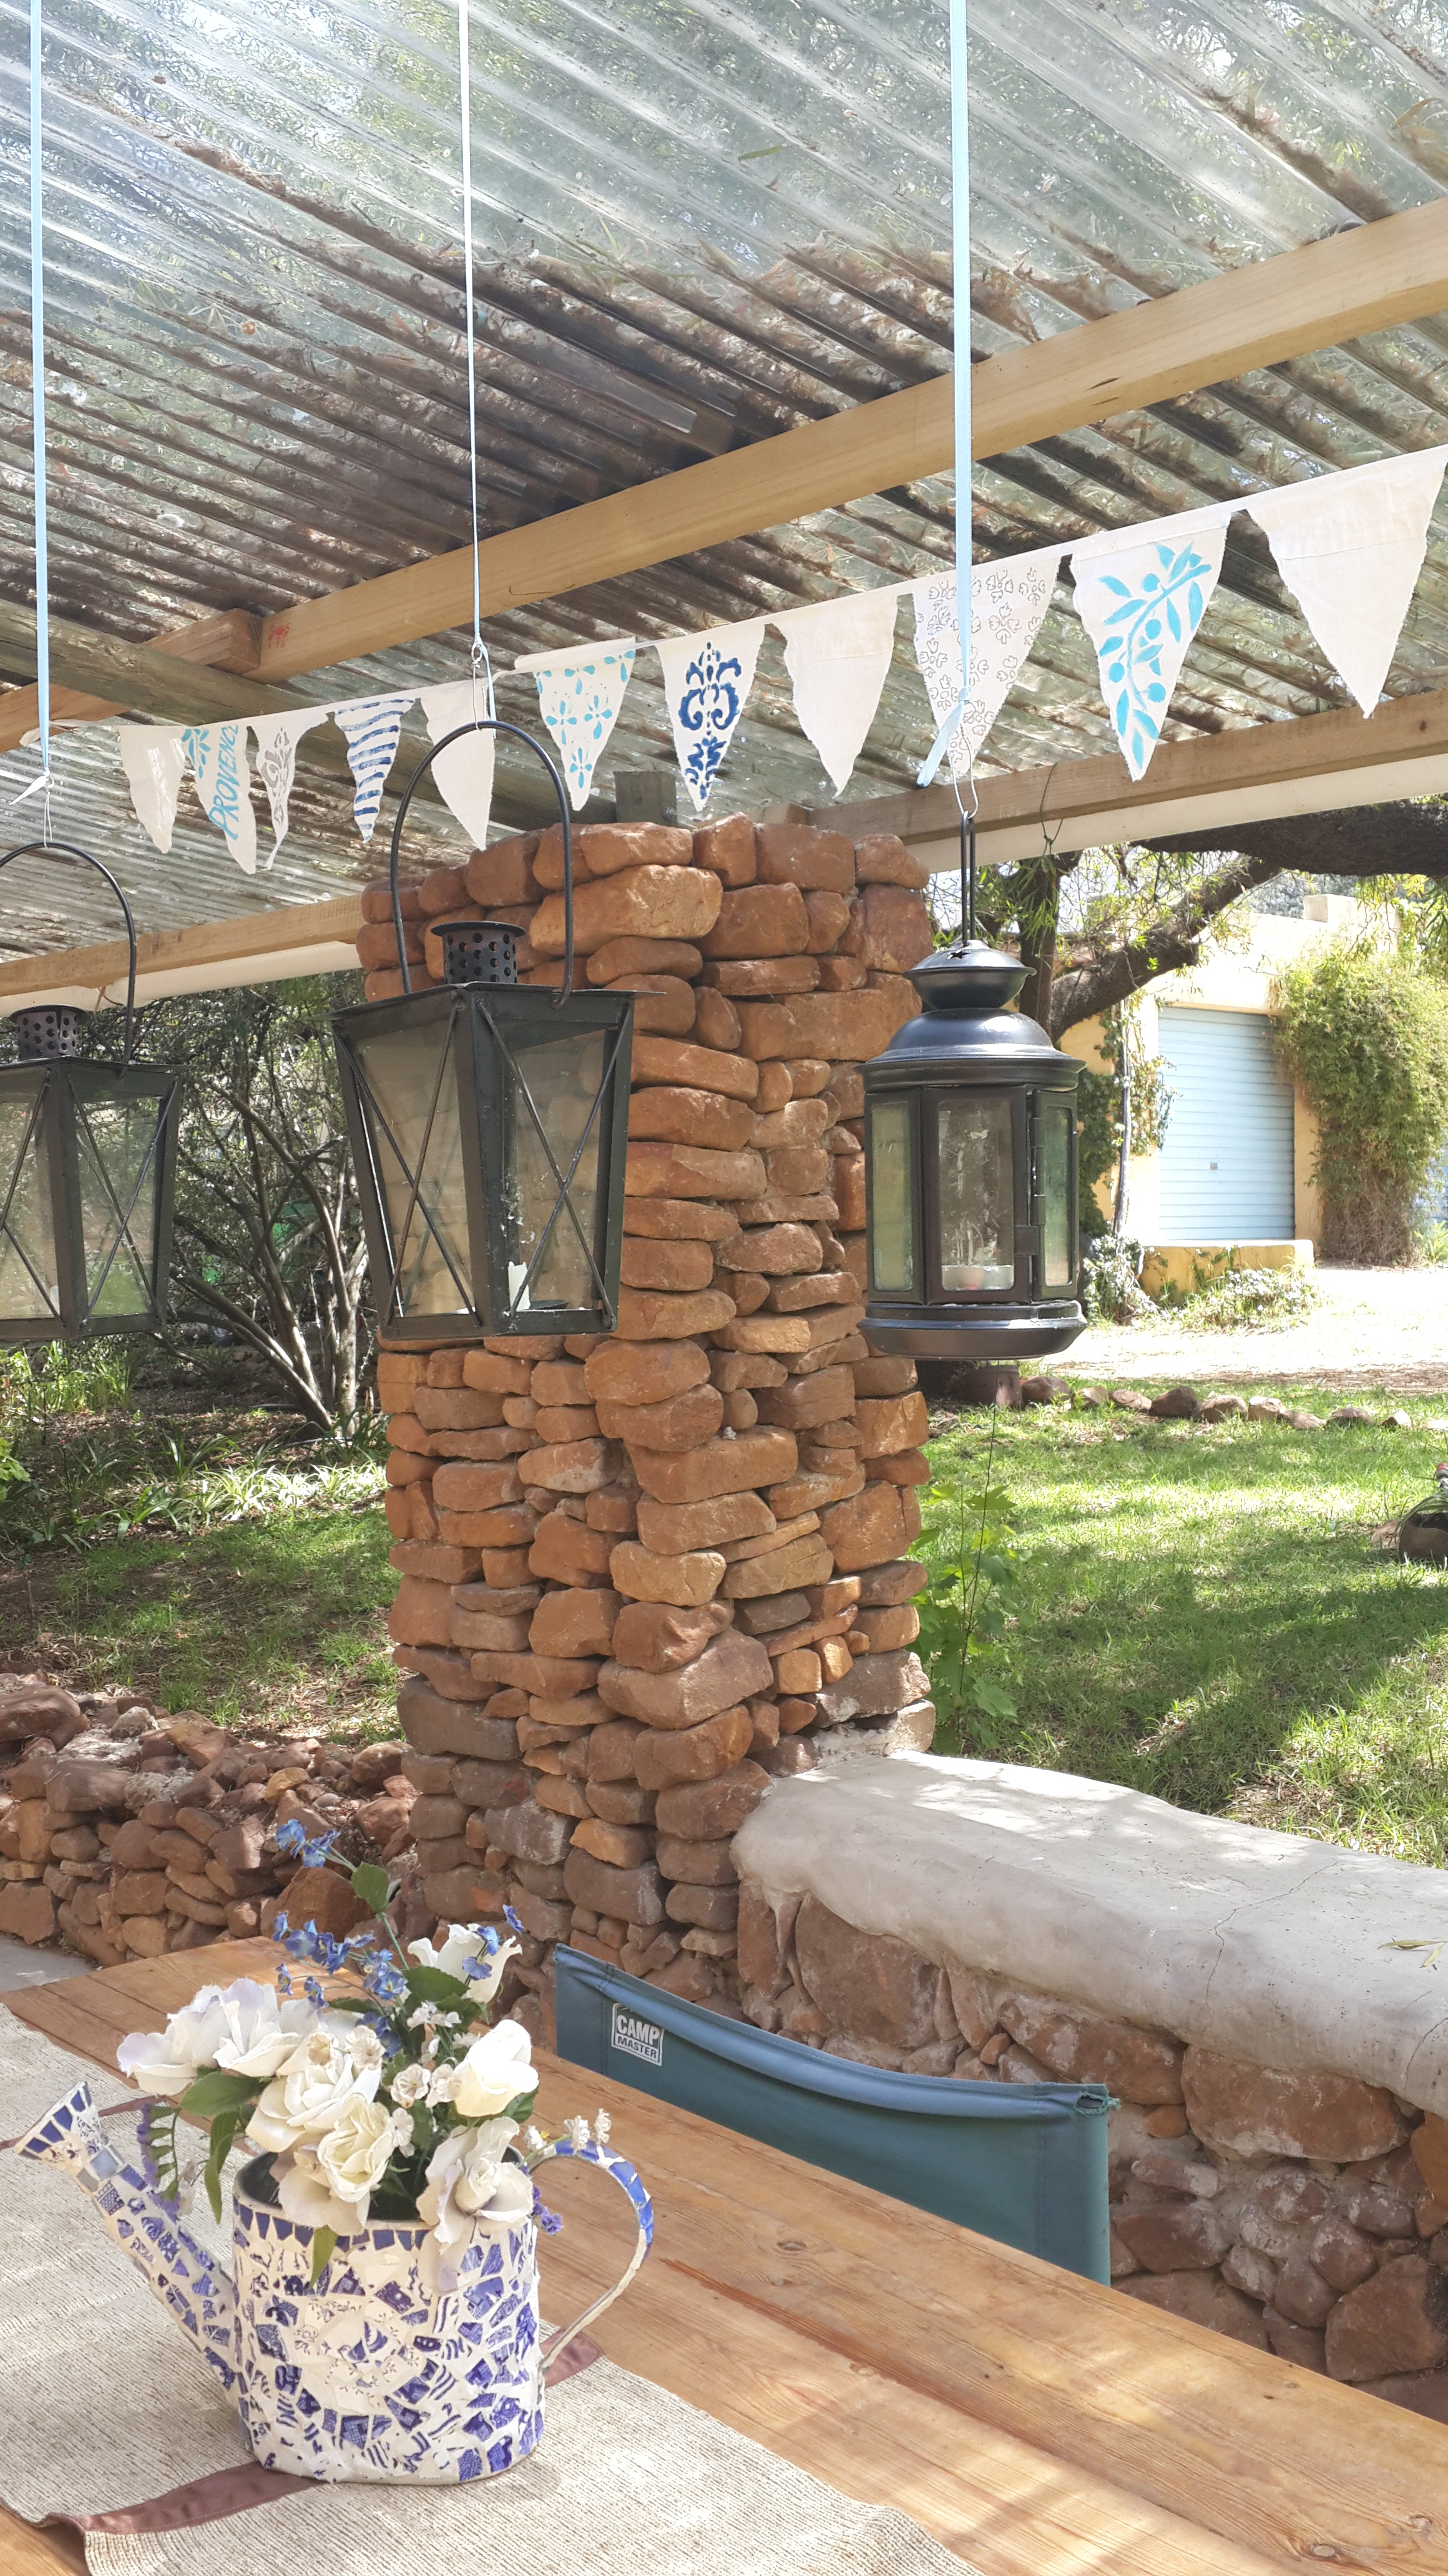 Creative crafts french patio ideas practical pages for Creative patio ideas